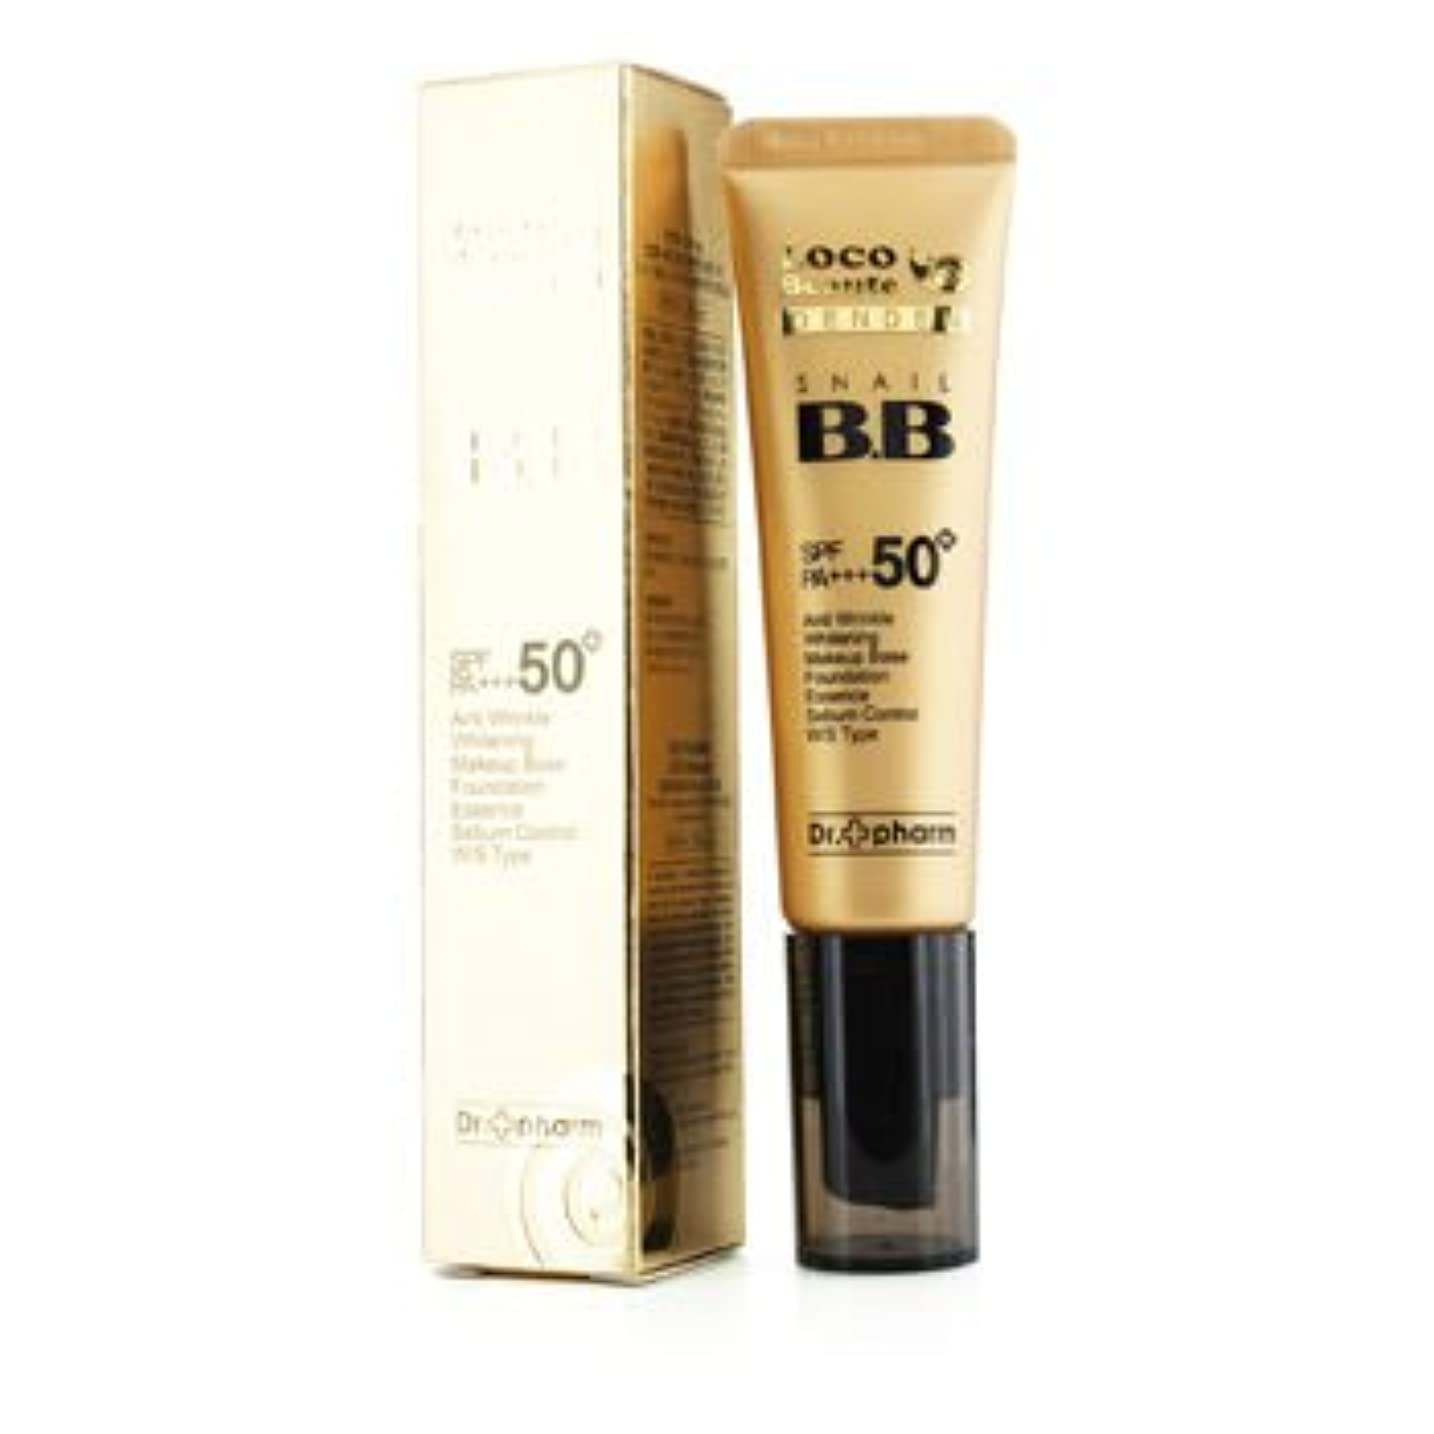 時折ブランデー賃金Dr. Pharm LOCO Beaute DenDen Snail BB Cream SPF5030ml/1oz並行輸入品